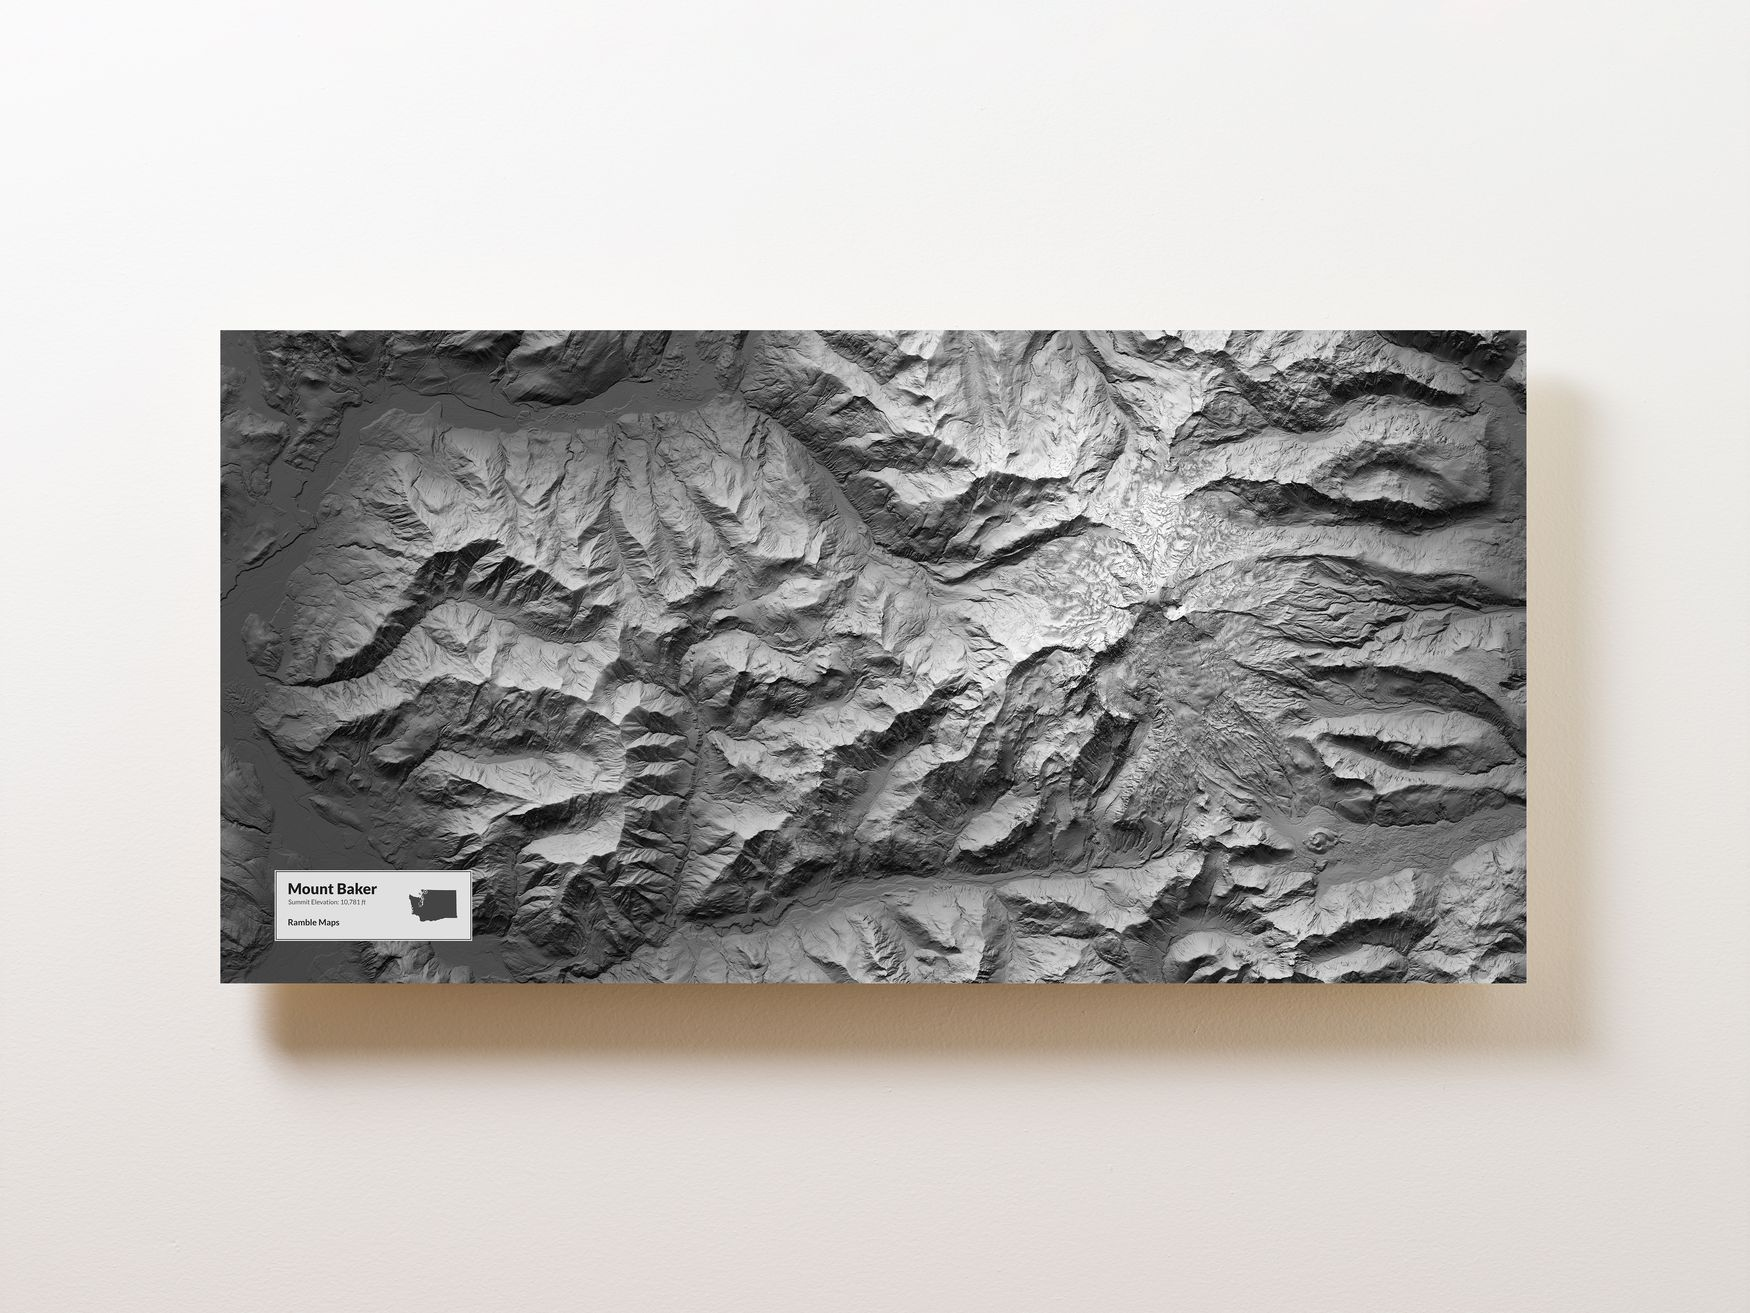 Mount Baker Wall Map